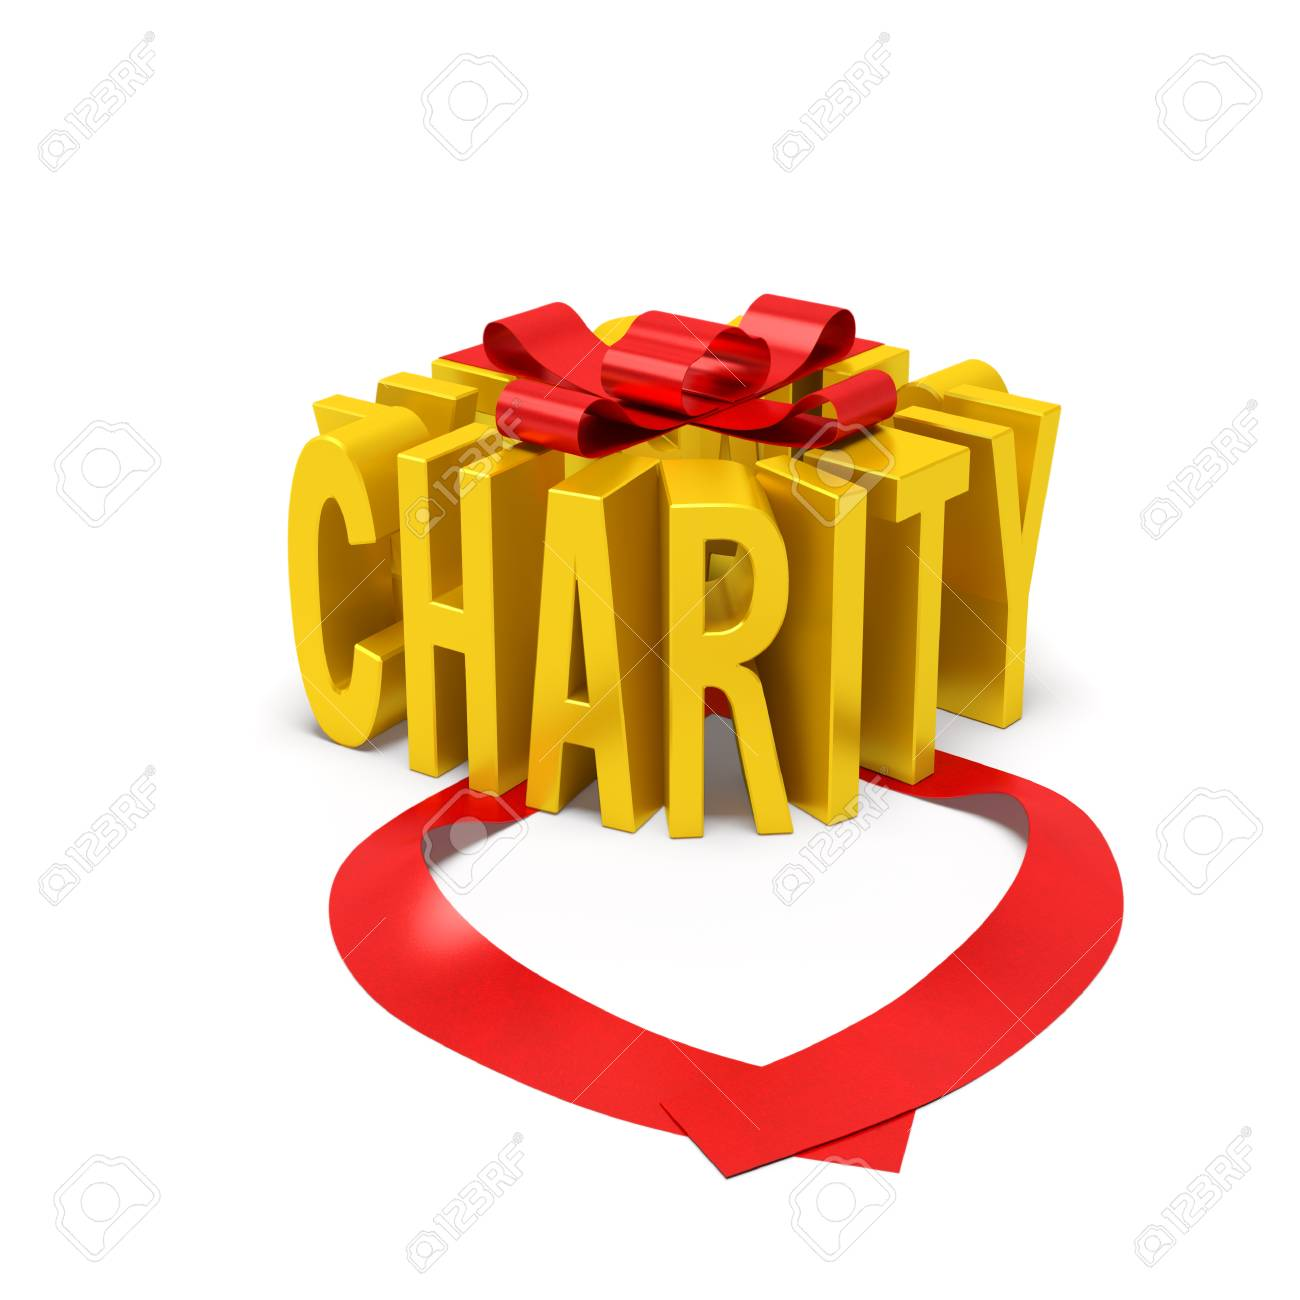 Charity Creative Concept Golden Word In The Form Of Gift Box With